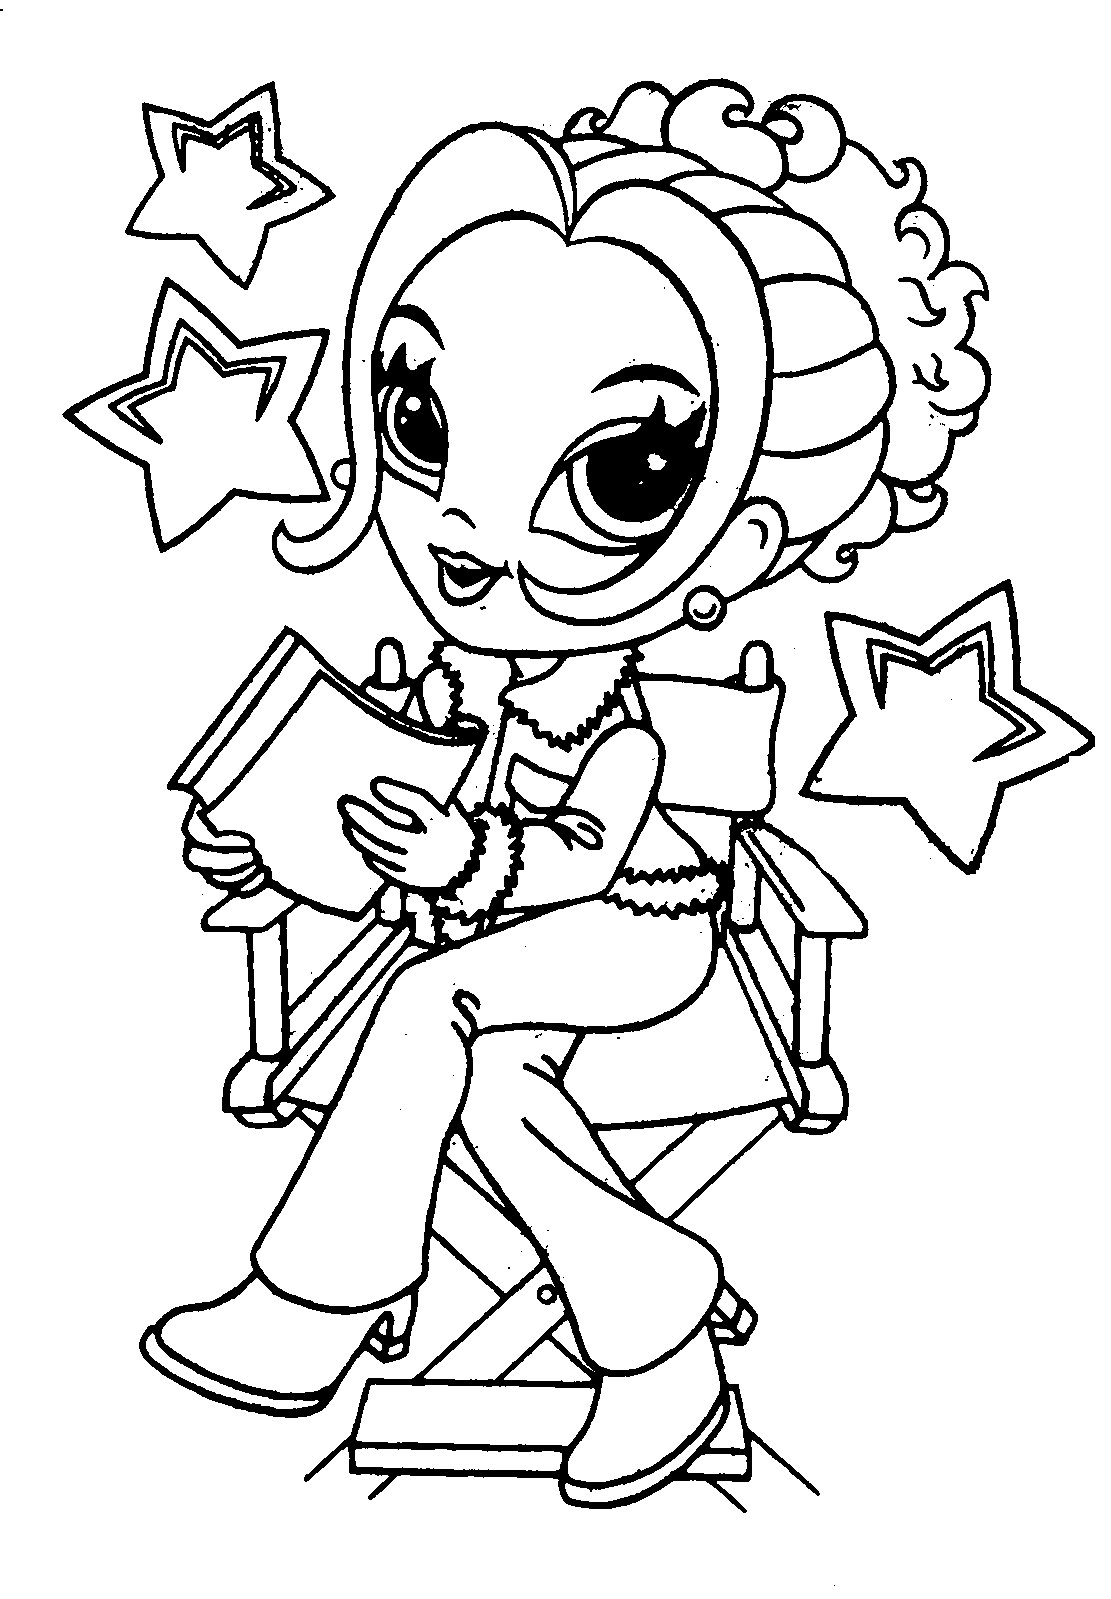 free lisa frank coloring pages - photo#19